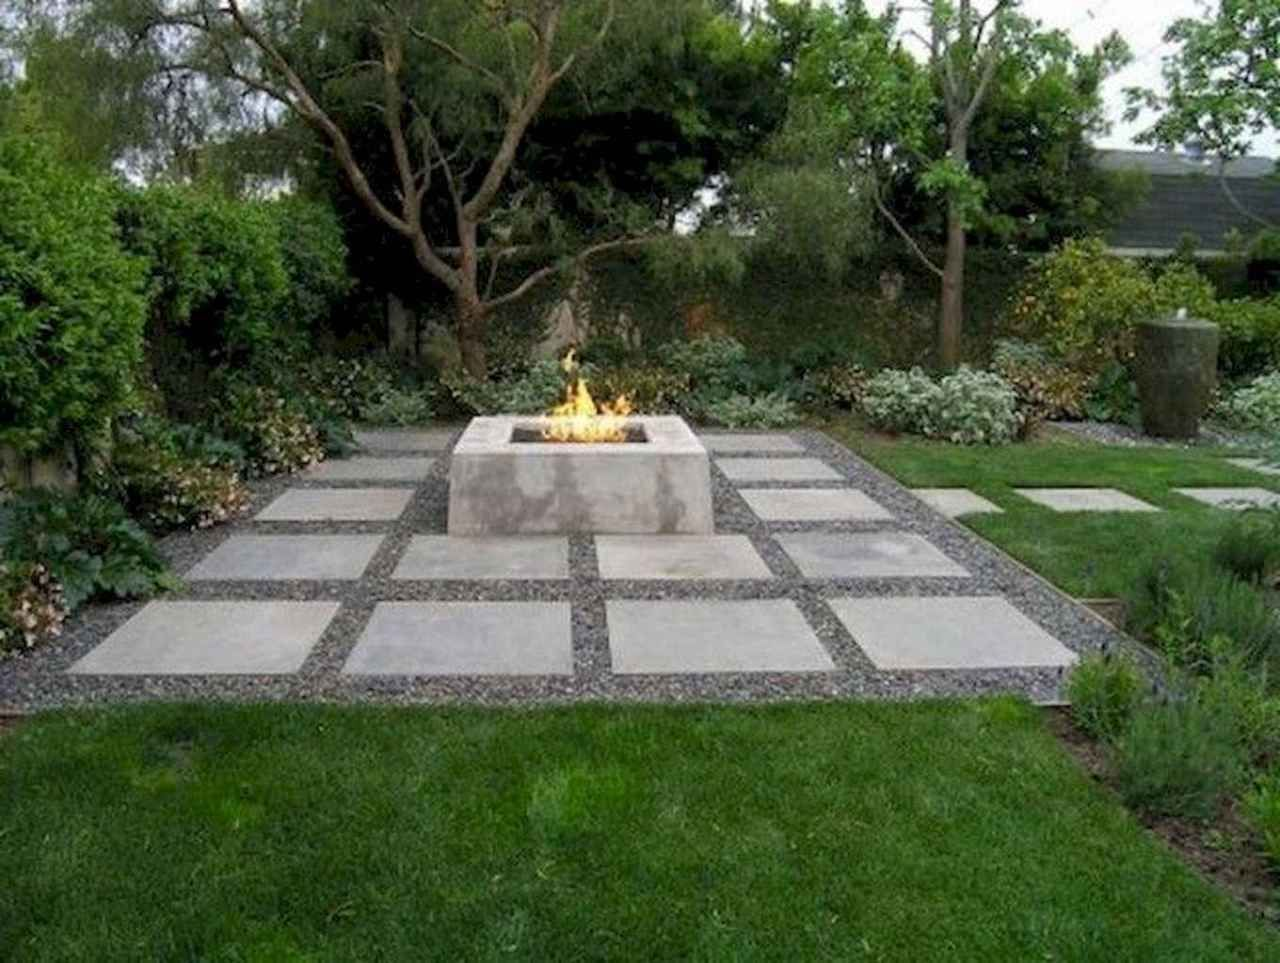 50 Easy Diy Fire Pit Ideas For Backyard Landscaping Fire Pit